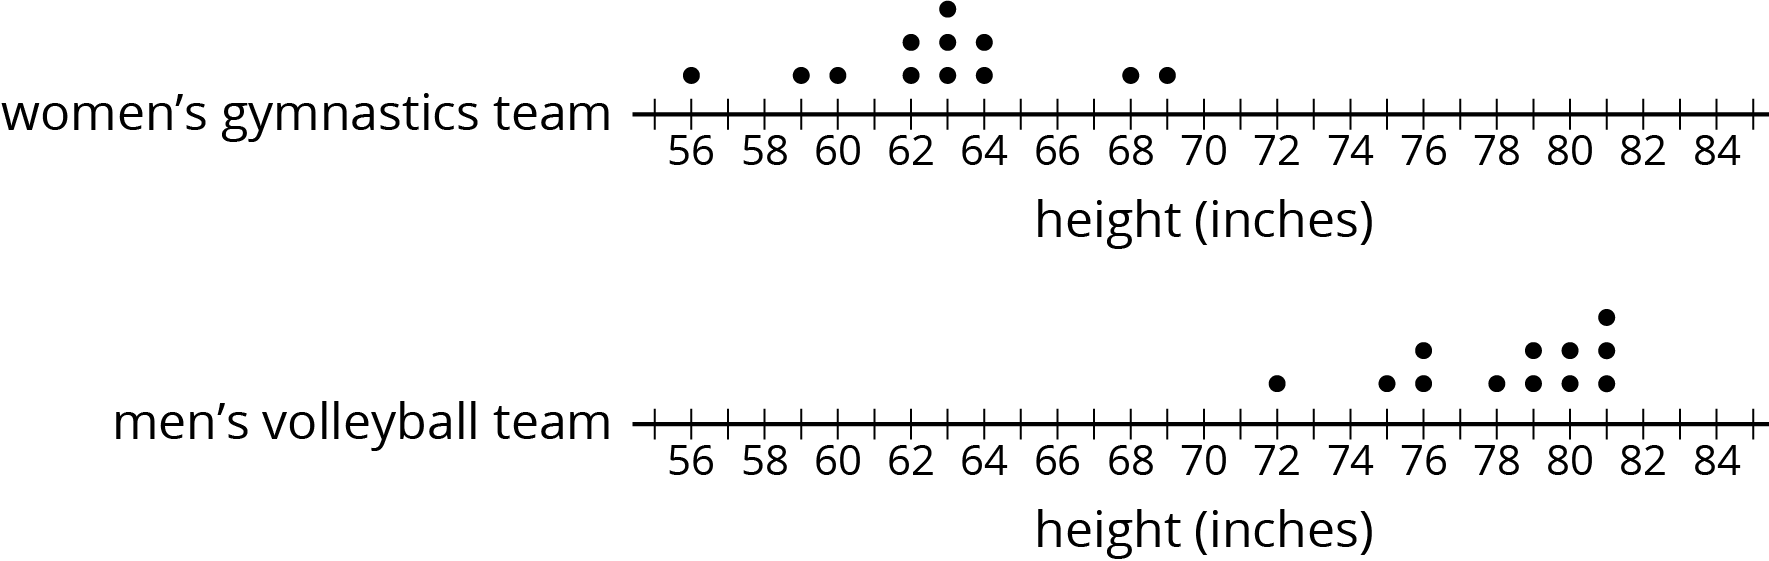 "Two dot plots for ""height in inches"" are labeled ""women's gymnastics team"" and ""men's volleyball team."" The numbers 56 through 84, in increments of 2, are indicated on both dot plots. The data are as follows:  Women's gymnastics team: 56 inches, 1 dot. 59 inches, 1 dot. 60 inches, 1 dot. 62 inches, 2 dots. 63 inches, 3 dots. 64 inches, 2 dots. 68 inches, 1 dot. 69 inches, 1 dot.  Men's volleyball team: 72 inches, 1 dot. 75 inches, 1 dot. 76 inches, 2 dots. 78 inches, 1 dot. 79 inches, 2 dots. 80 inches, 2 dots. 81 inches, 3 dots."